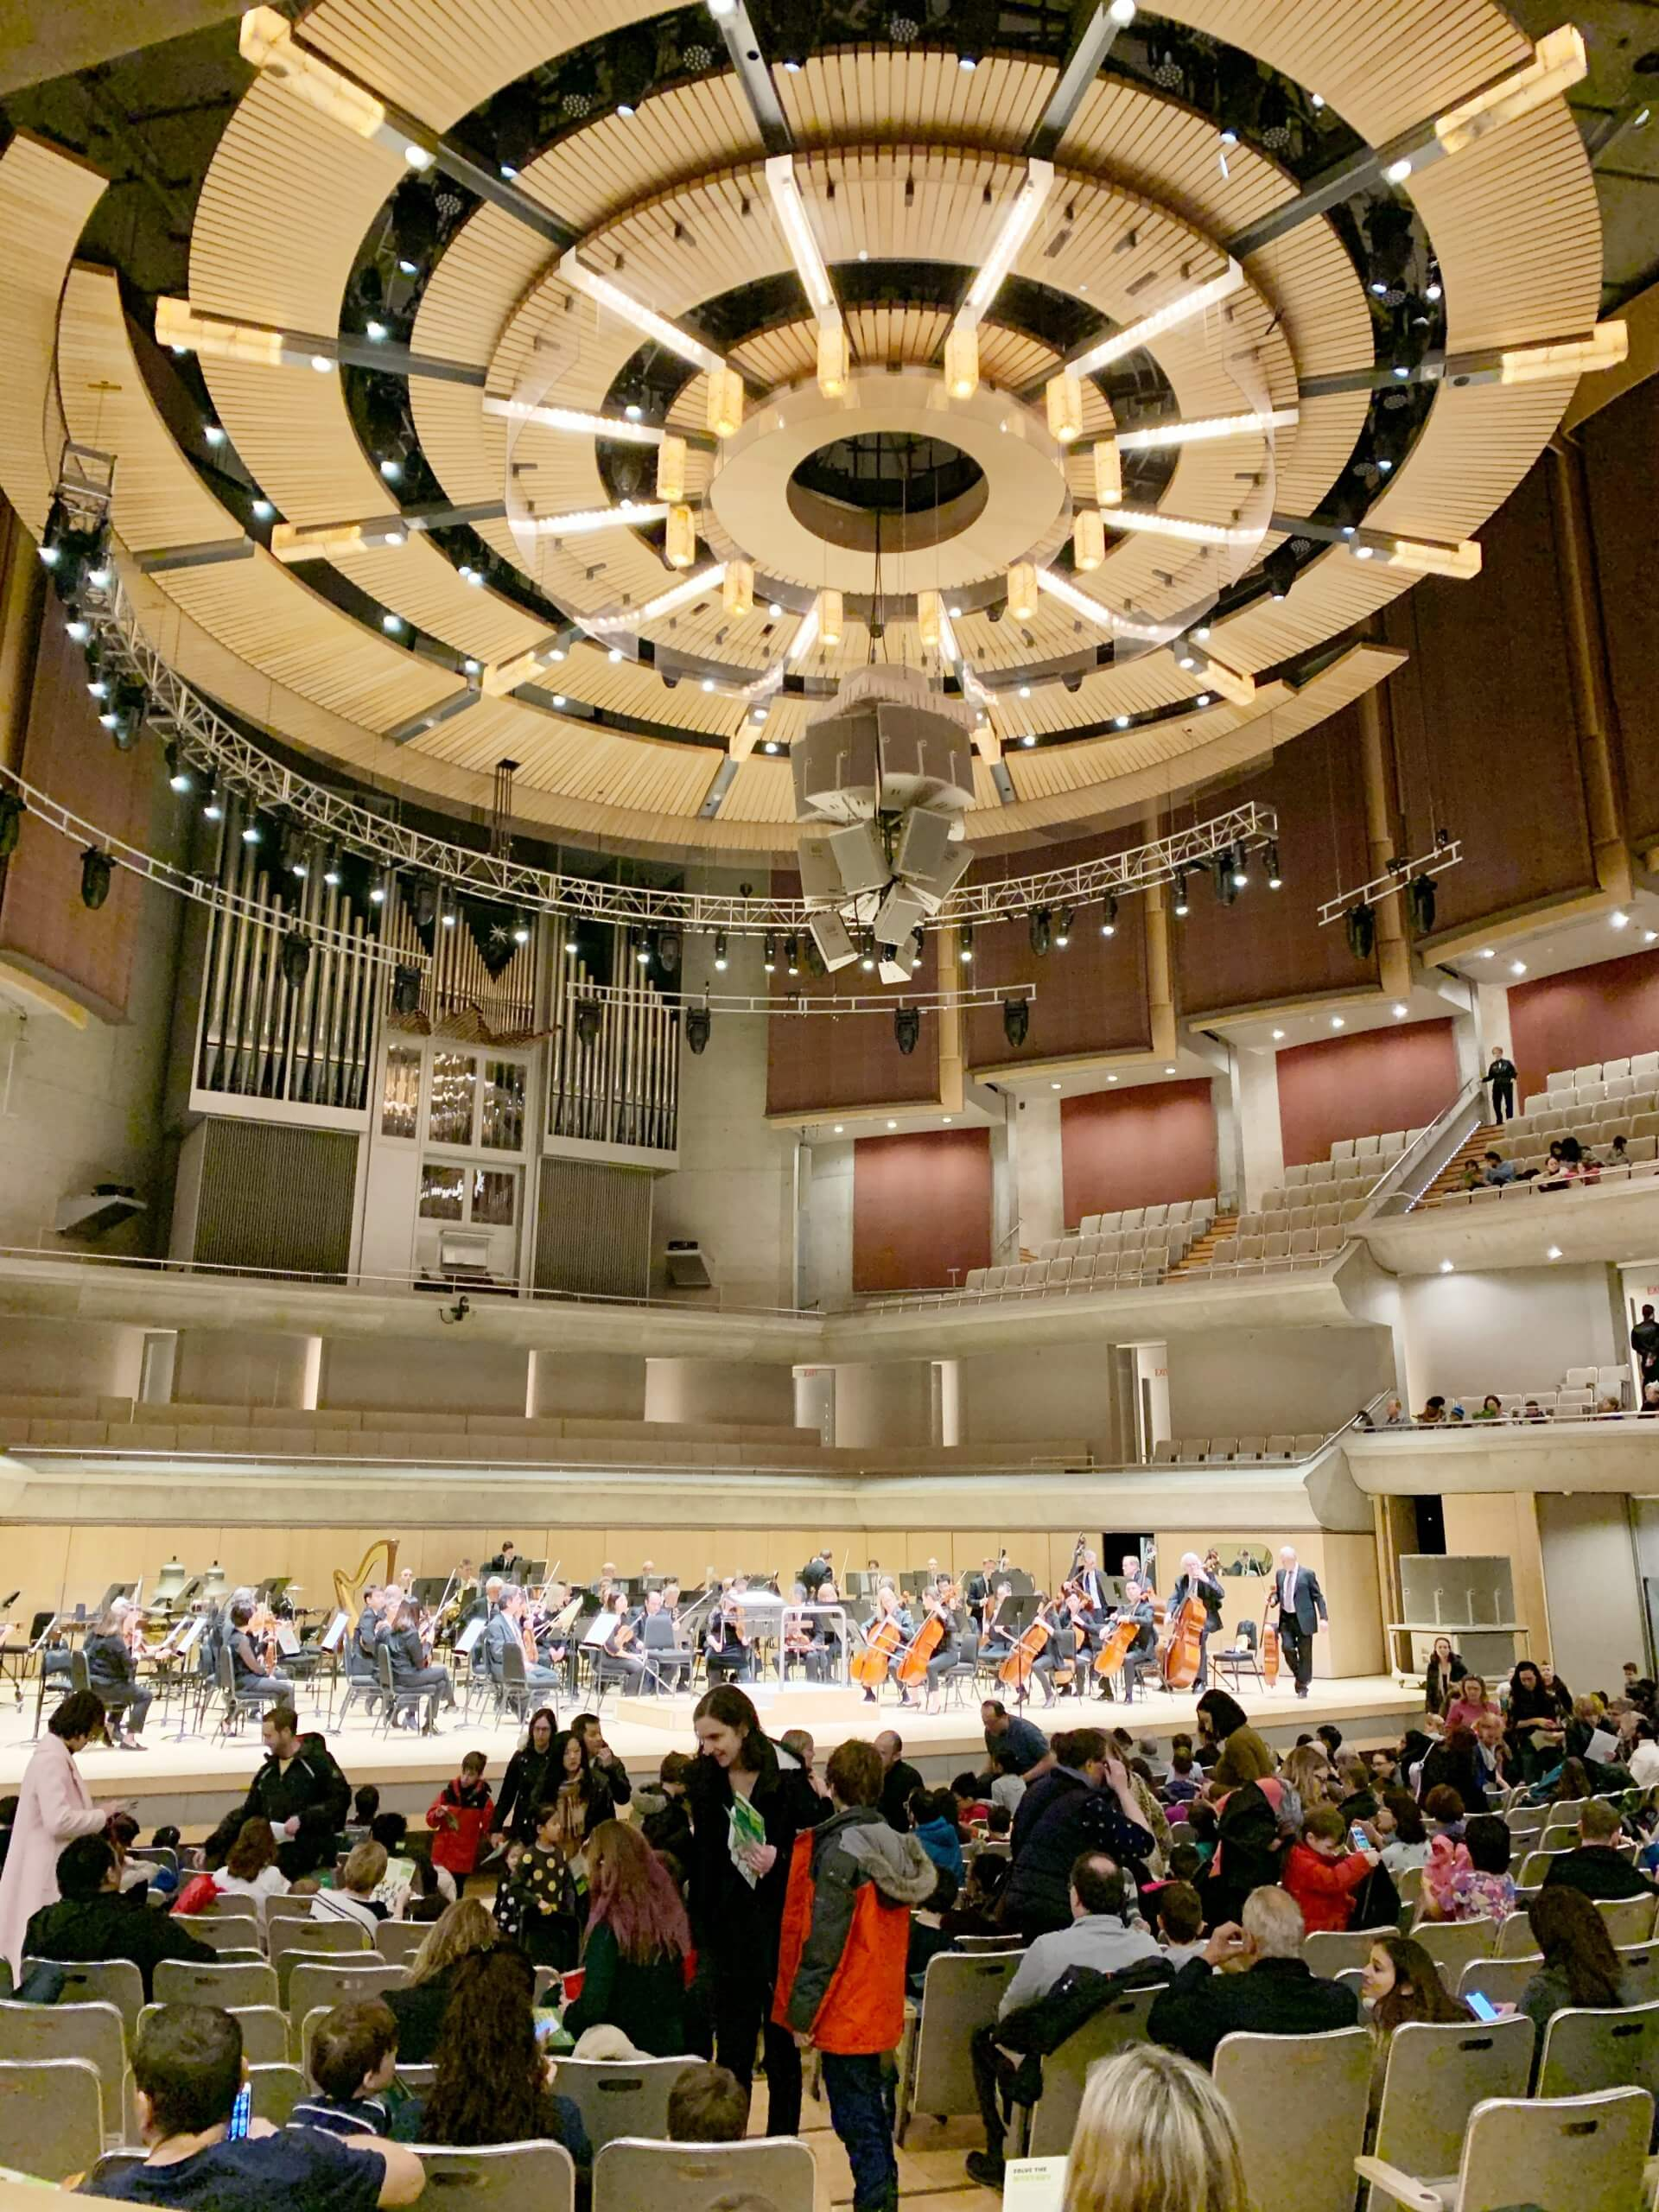 Our Experience at the Toronto Symphony Orchestra's Young People's Concert